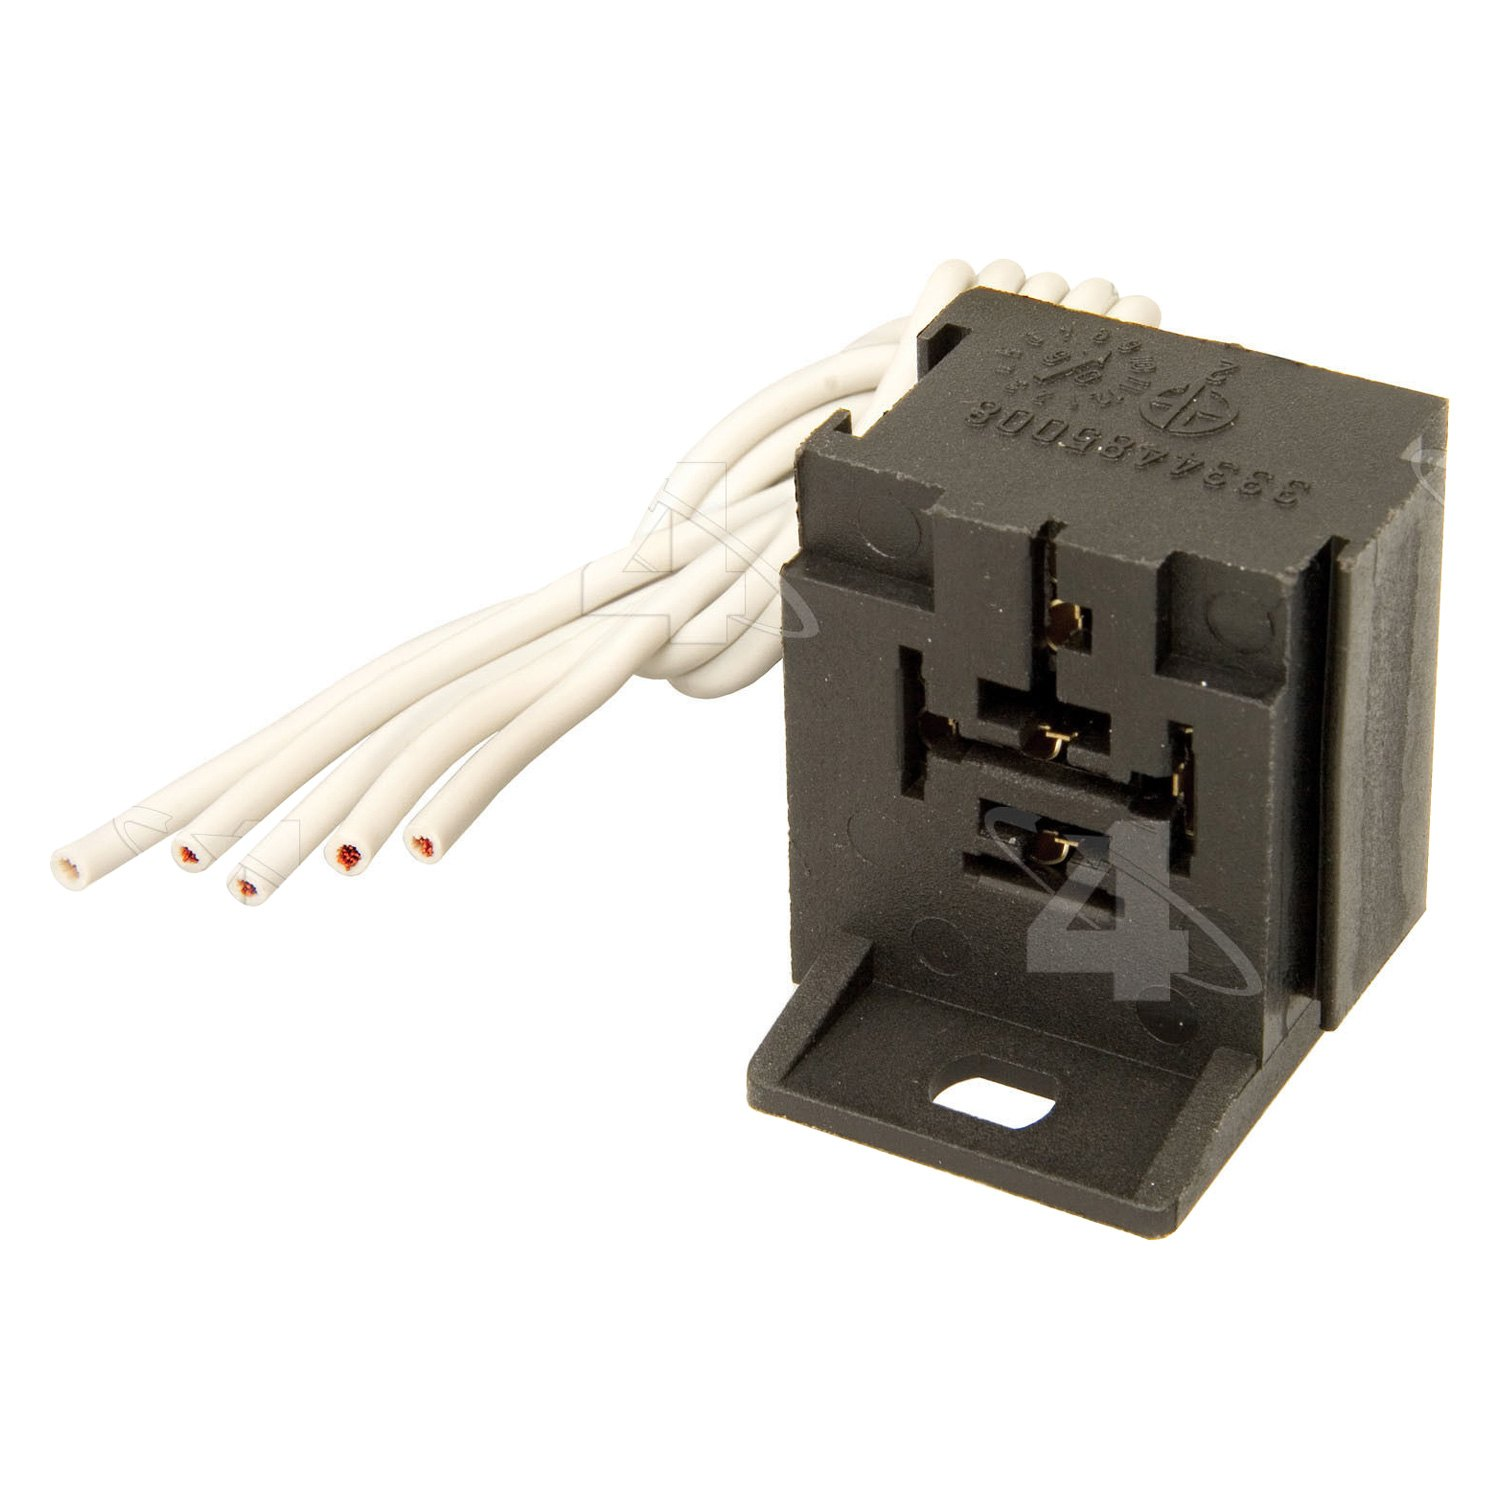 Four seasons 37211 hvac blower relay harness connector for Blower motor fan relay